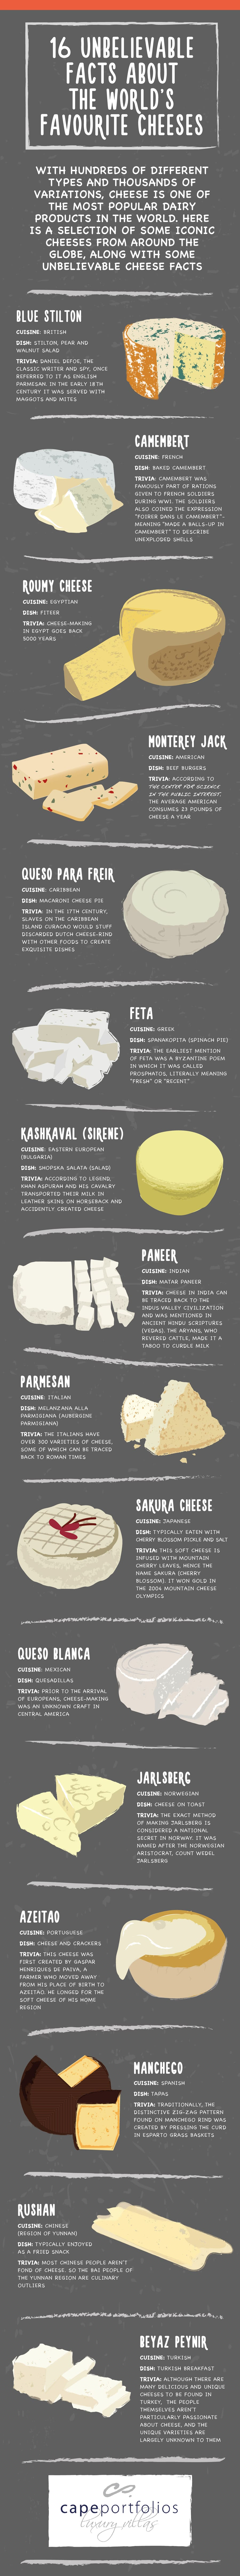 16 unbelievable facts about the worlds favorite cheese